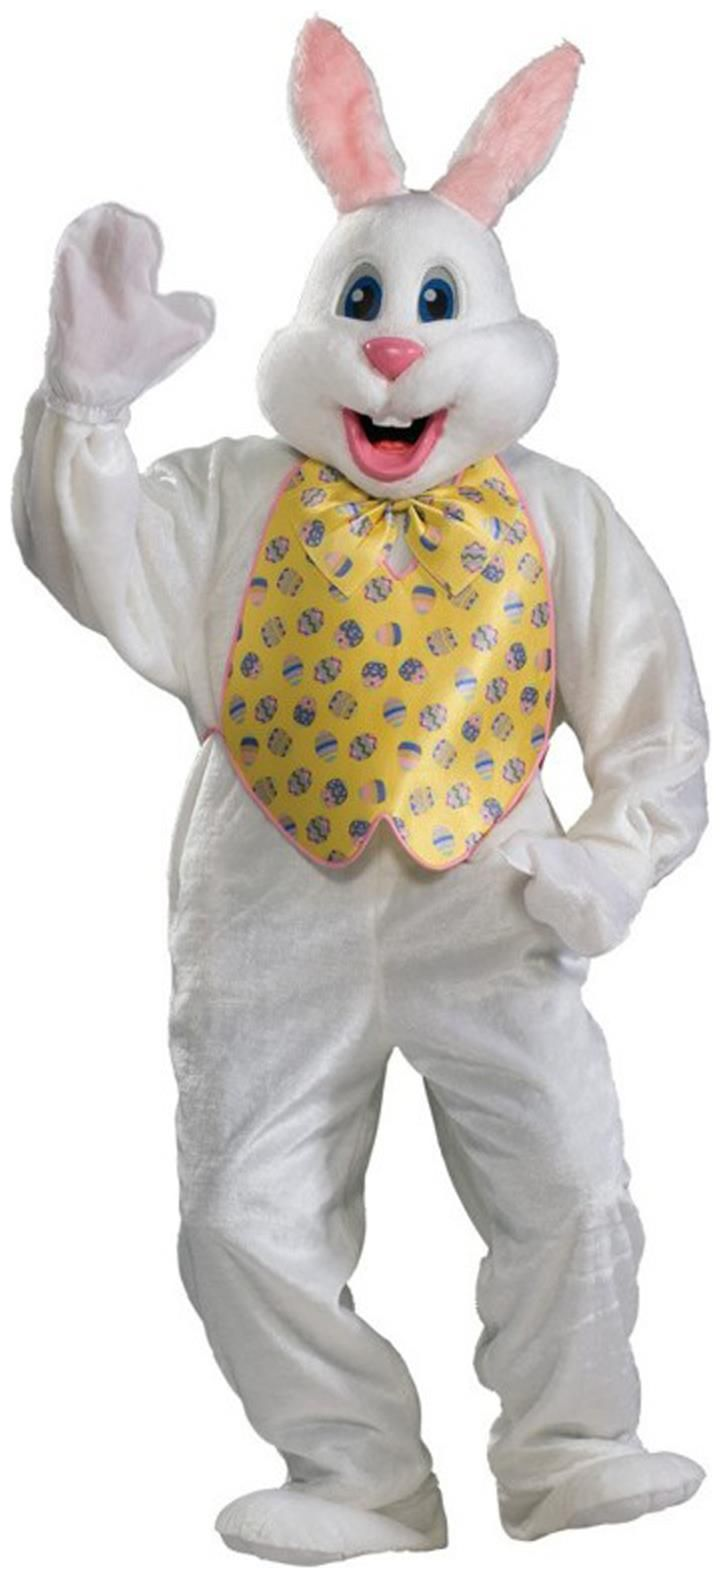 Spiffy Professional Easter Bunny Adult Costume. Exclusive selection of Animal & Bug Costumes for Easter Day at Partybell.    #easter #easterbunny #bunny